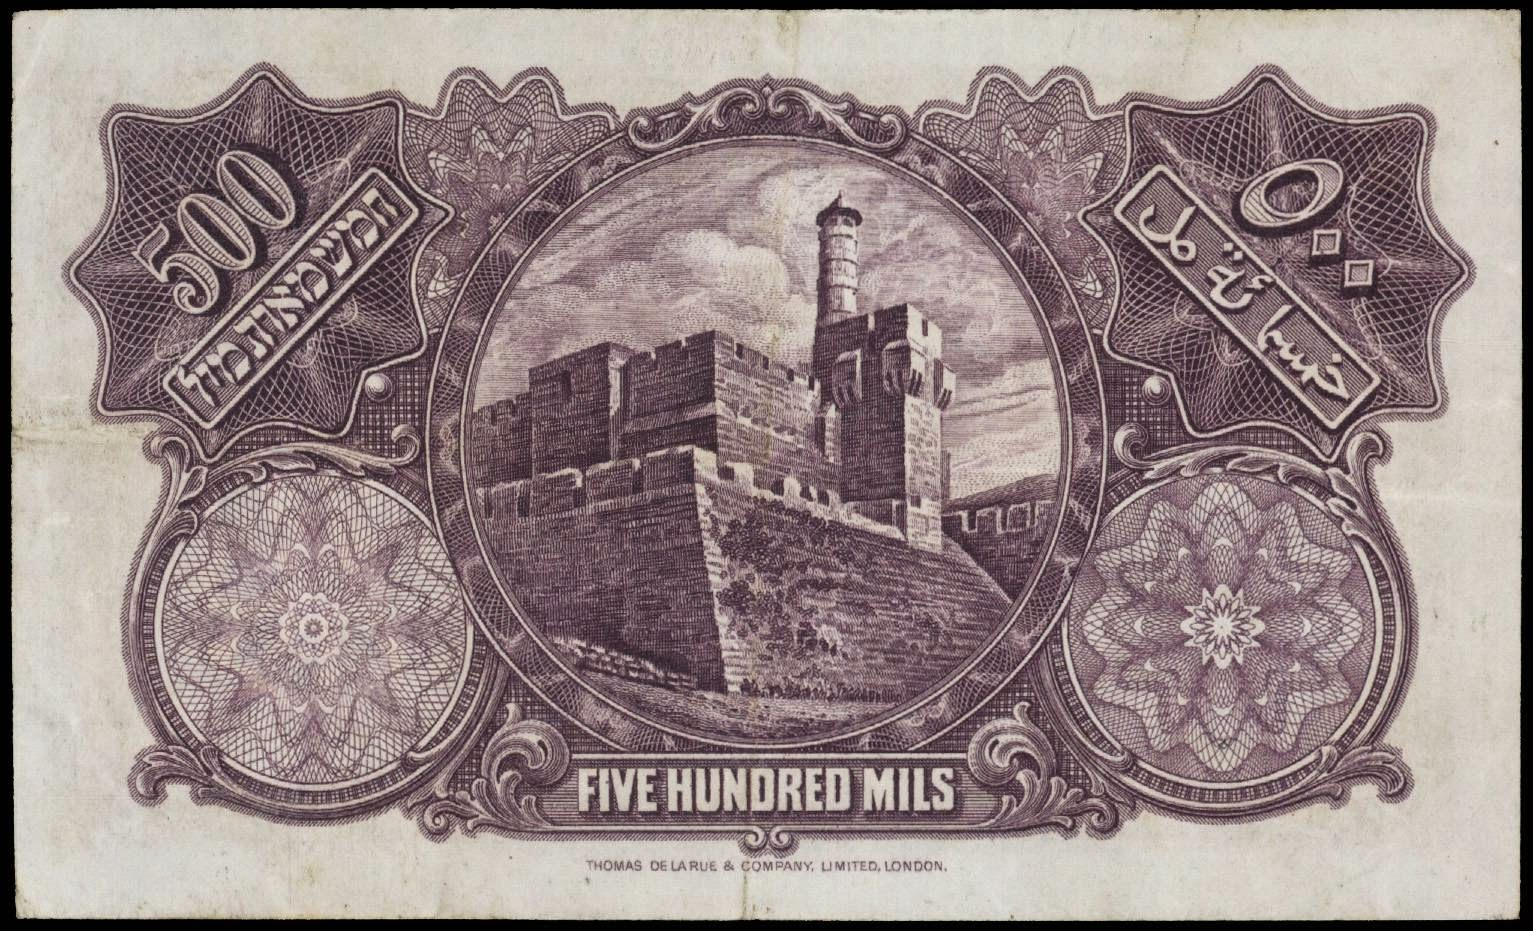 bank notes from Palestine Five Hundred Mils